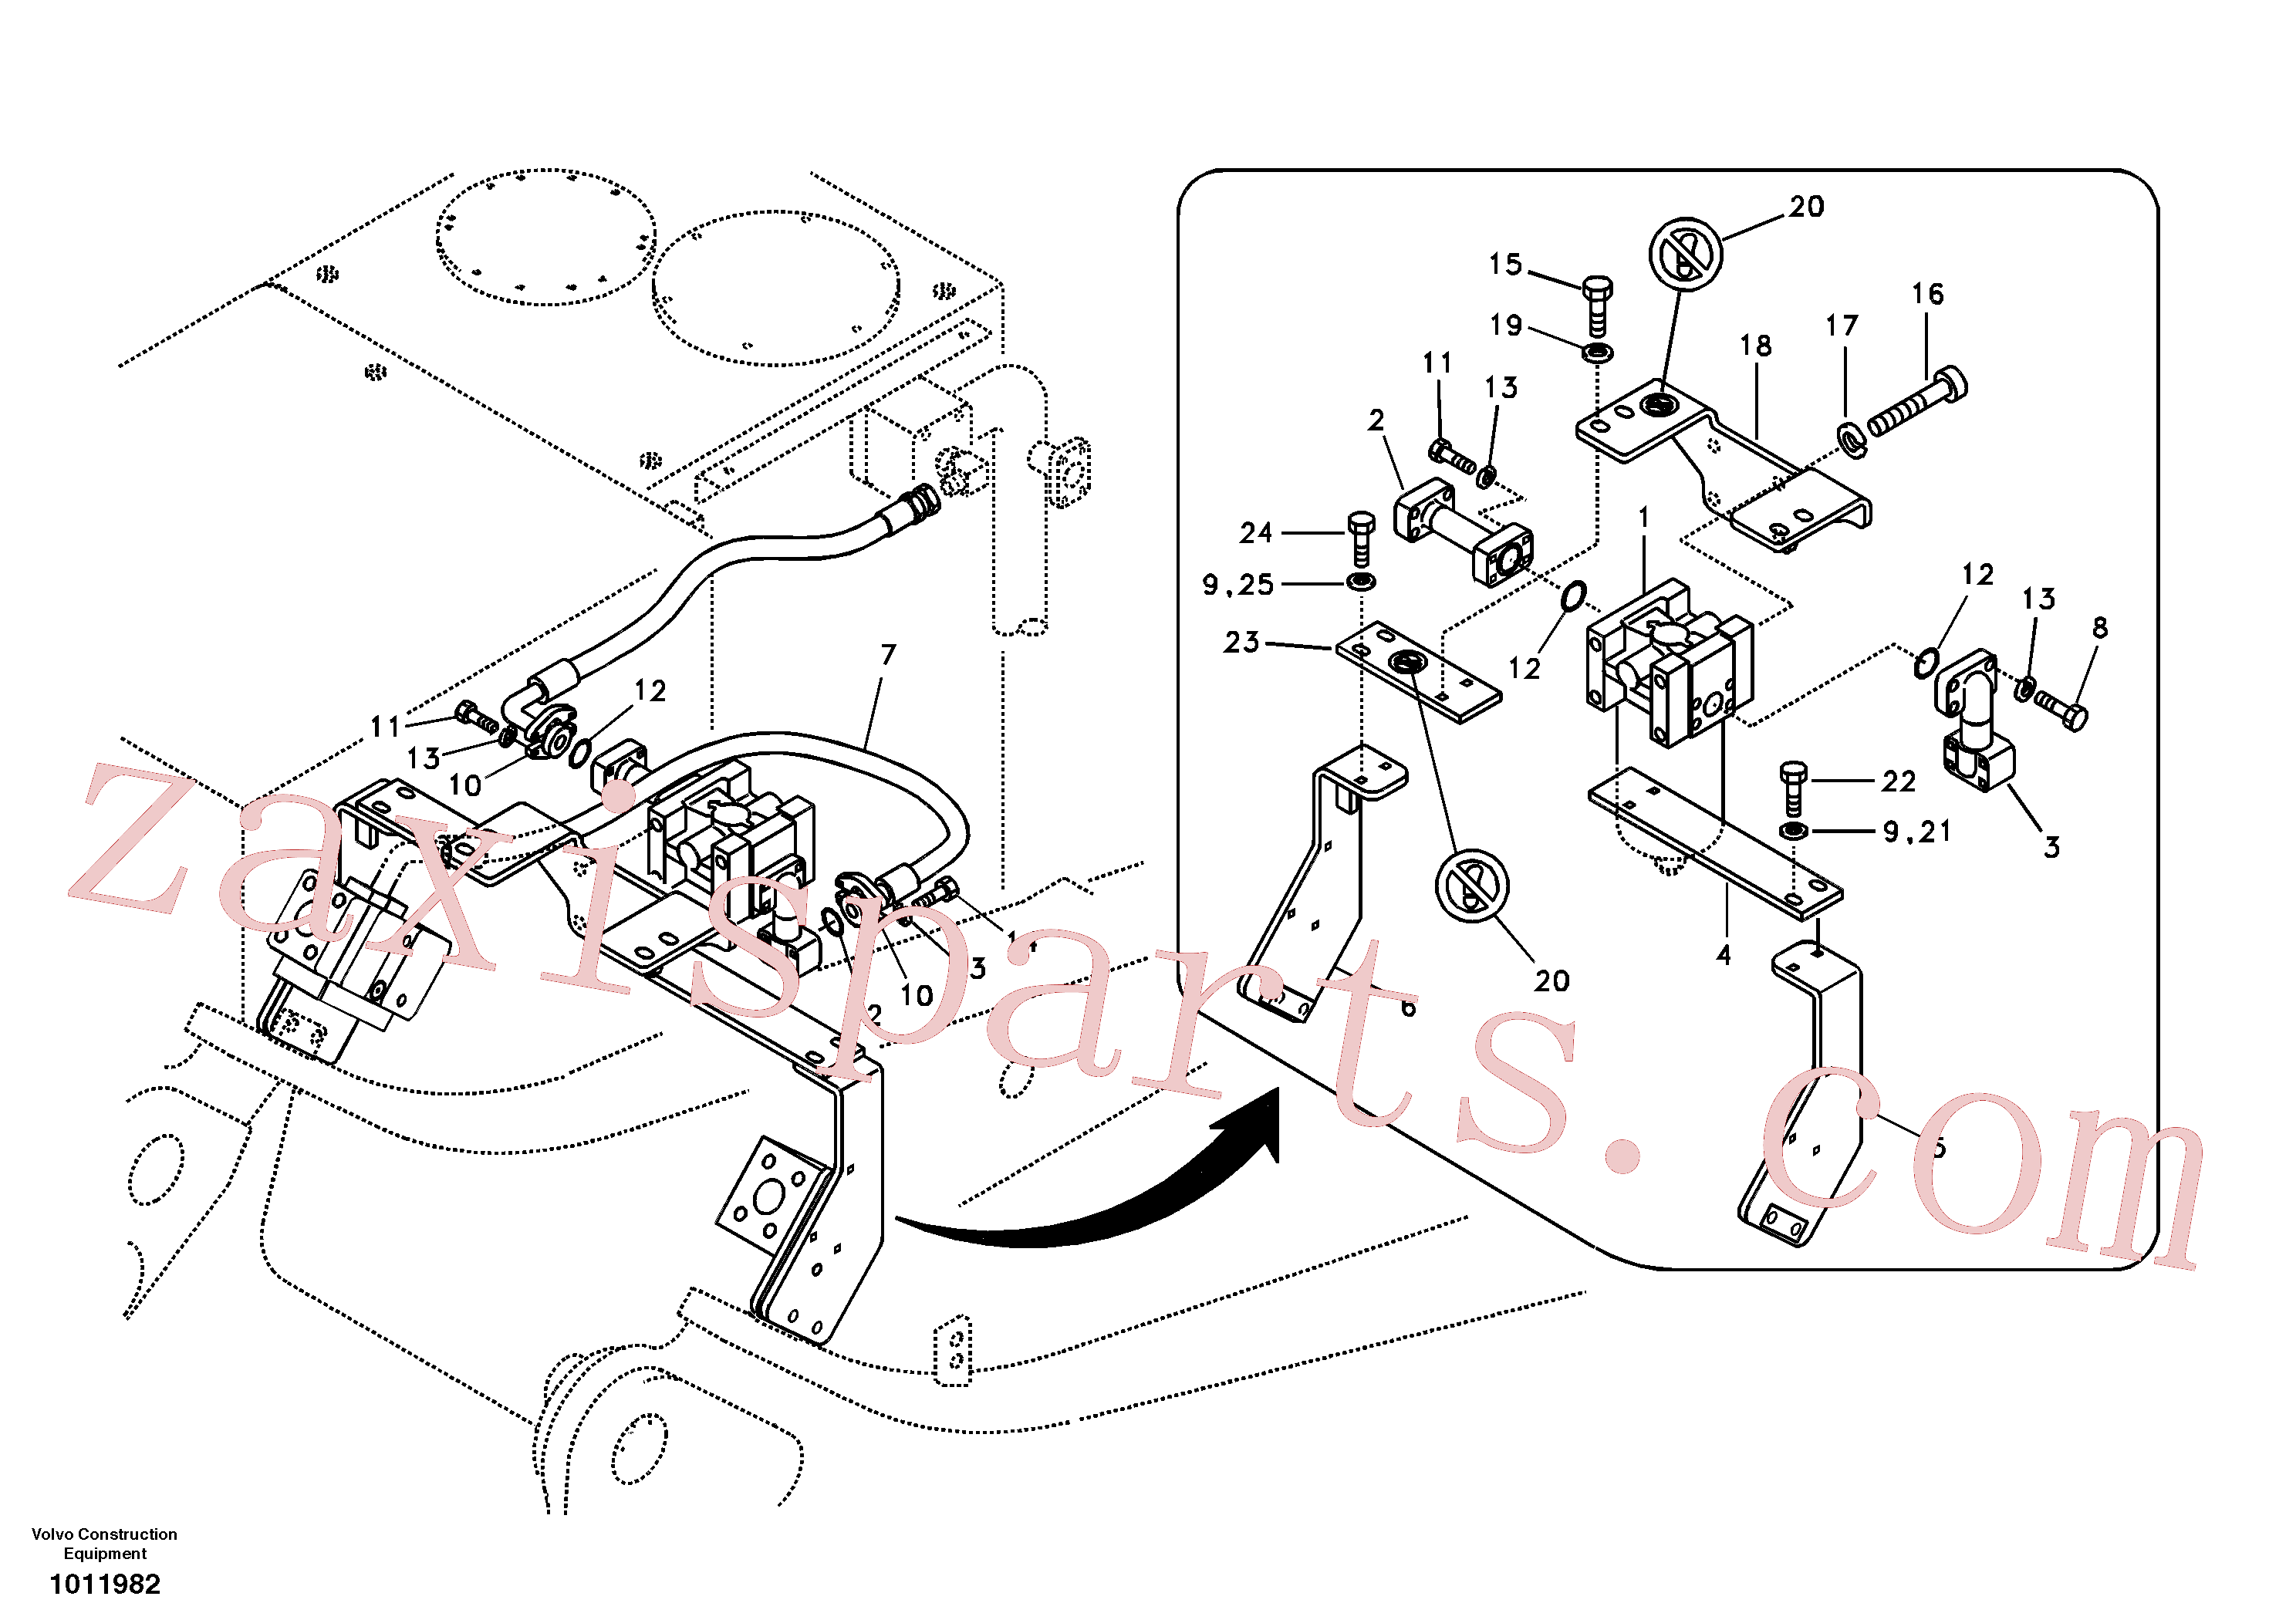 VOE14517203 for Volvo Working hydraulic, hammer and shear for return filter(1011982 assembly)